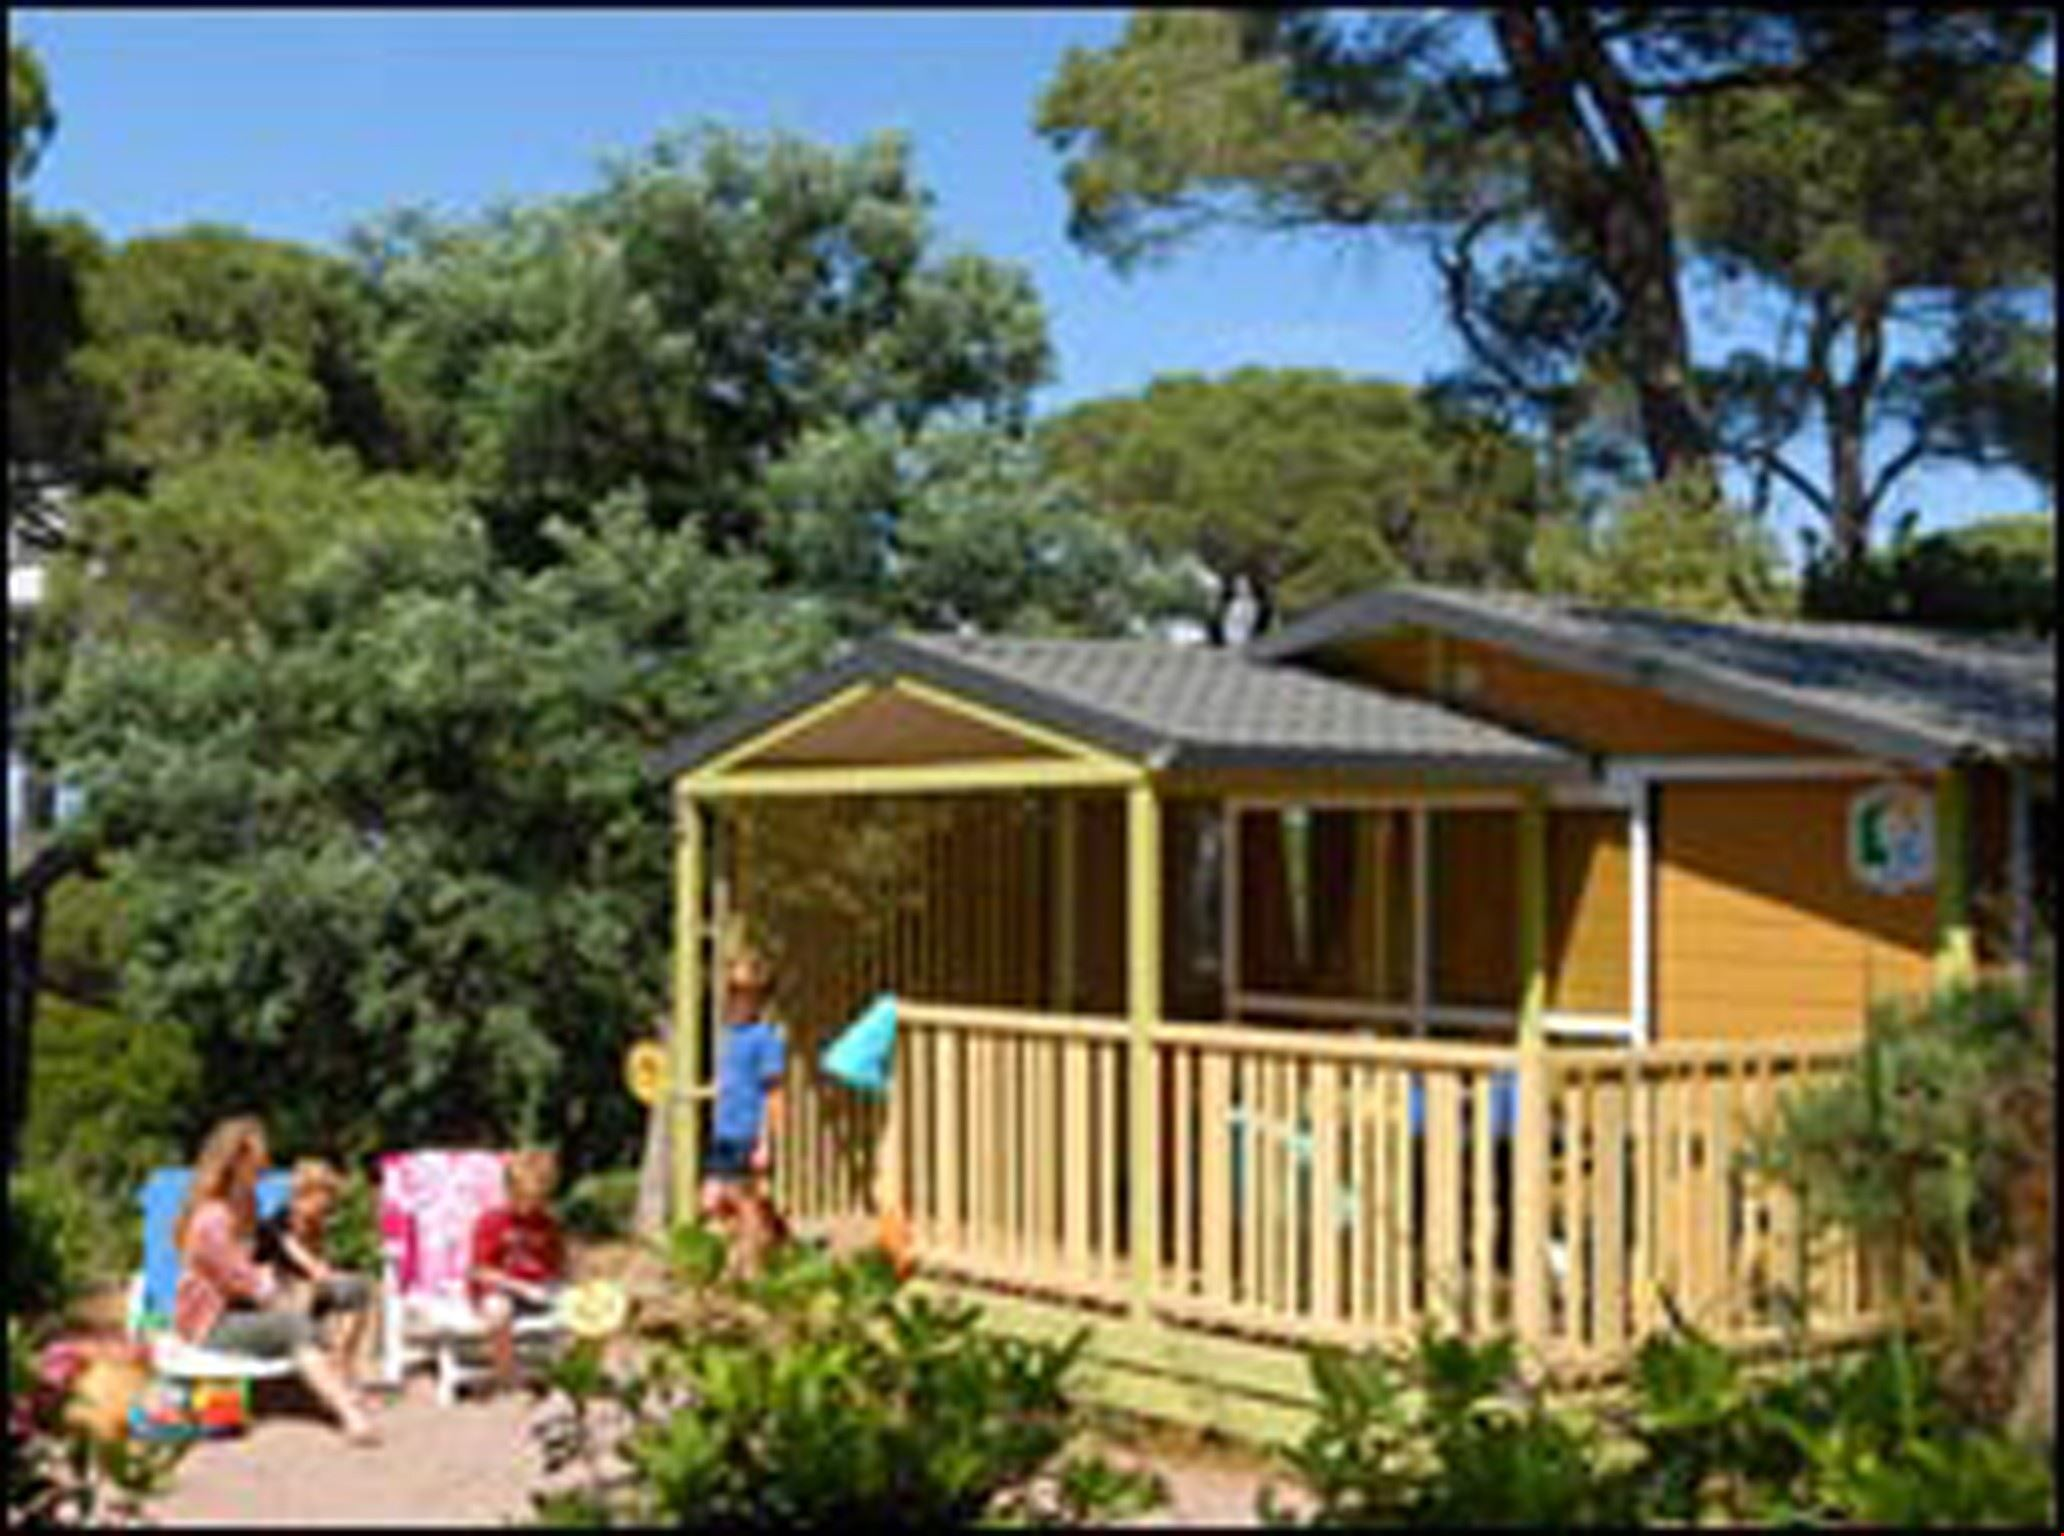 I Bungalow del Camping Le Soline